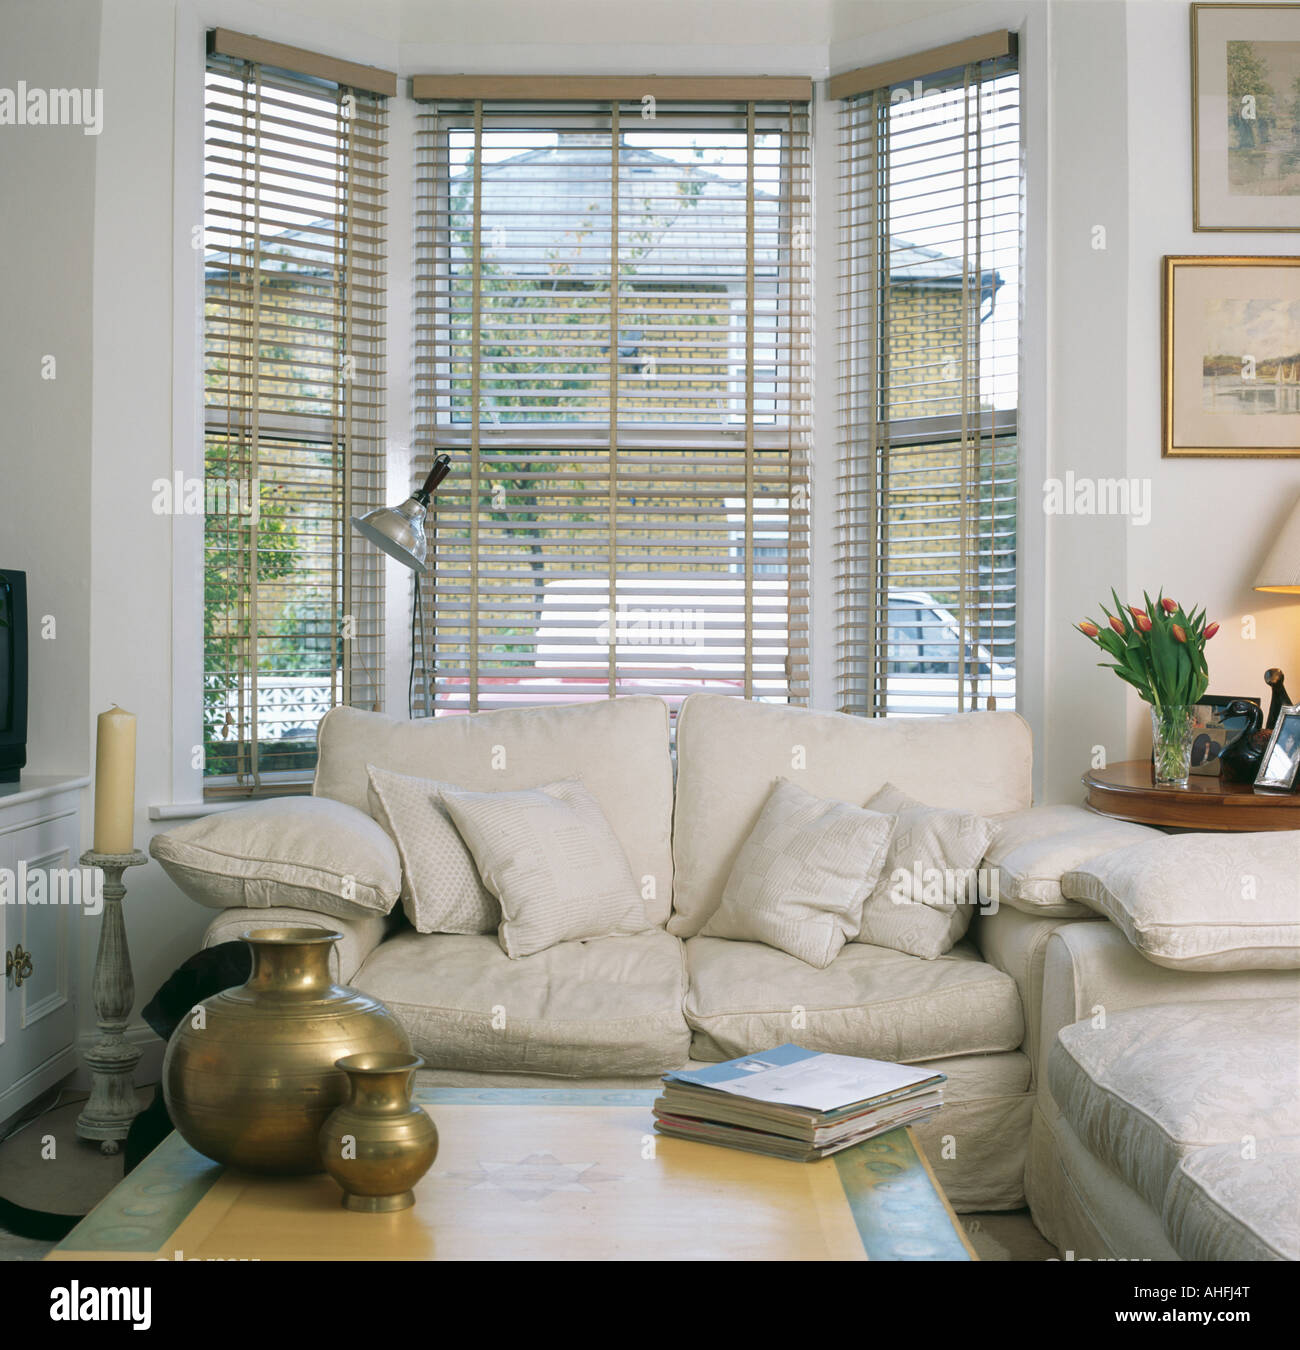 Cream Sofa In Front Of Bay Window With Slatted Blind In Living Room